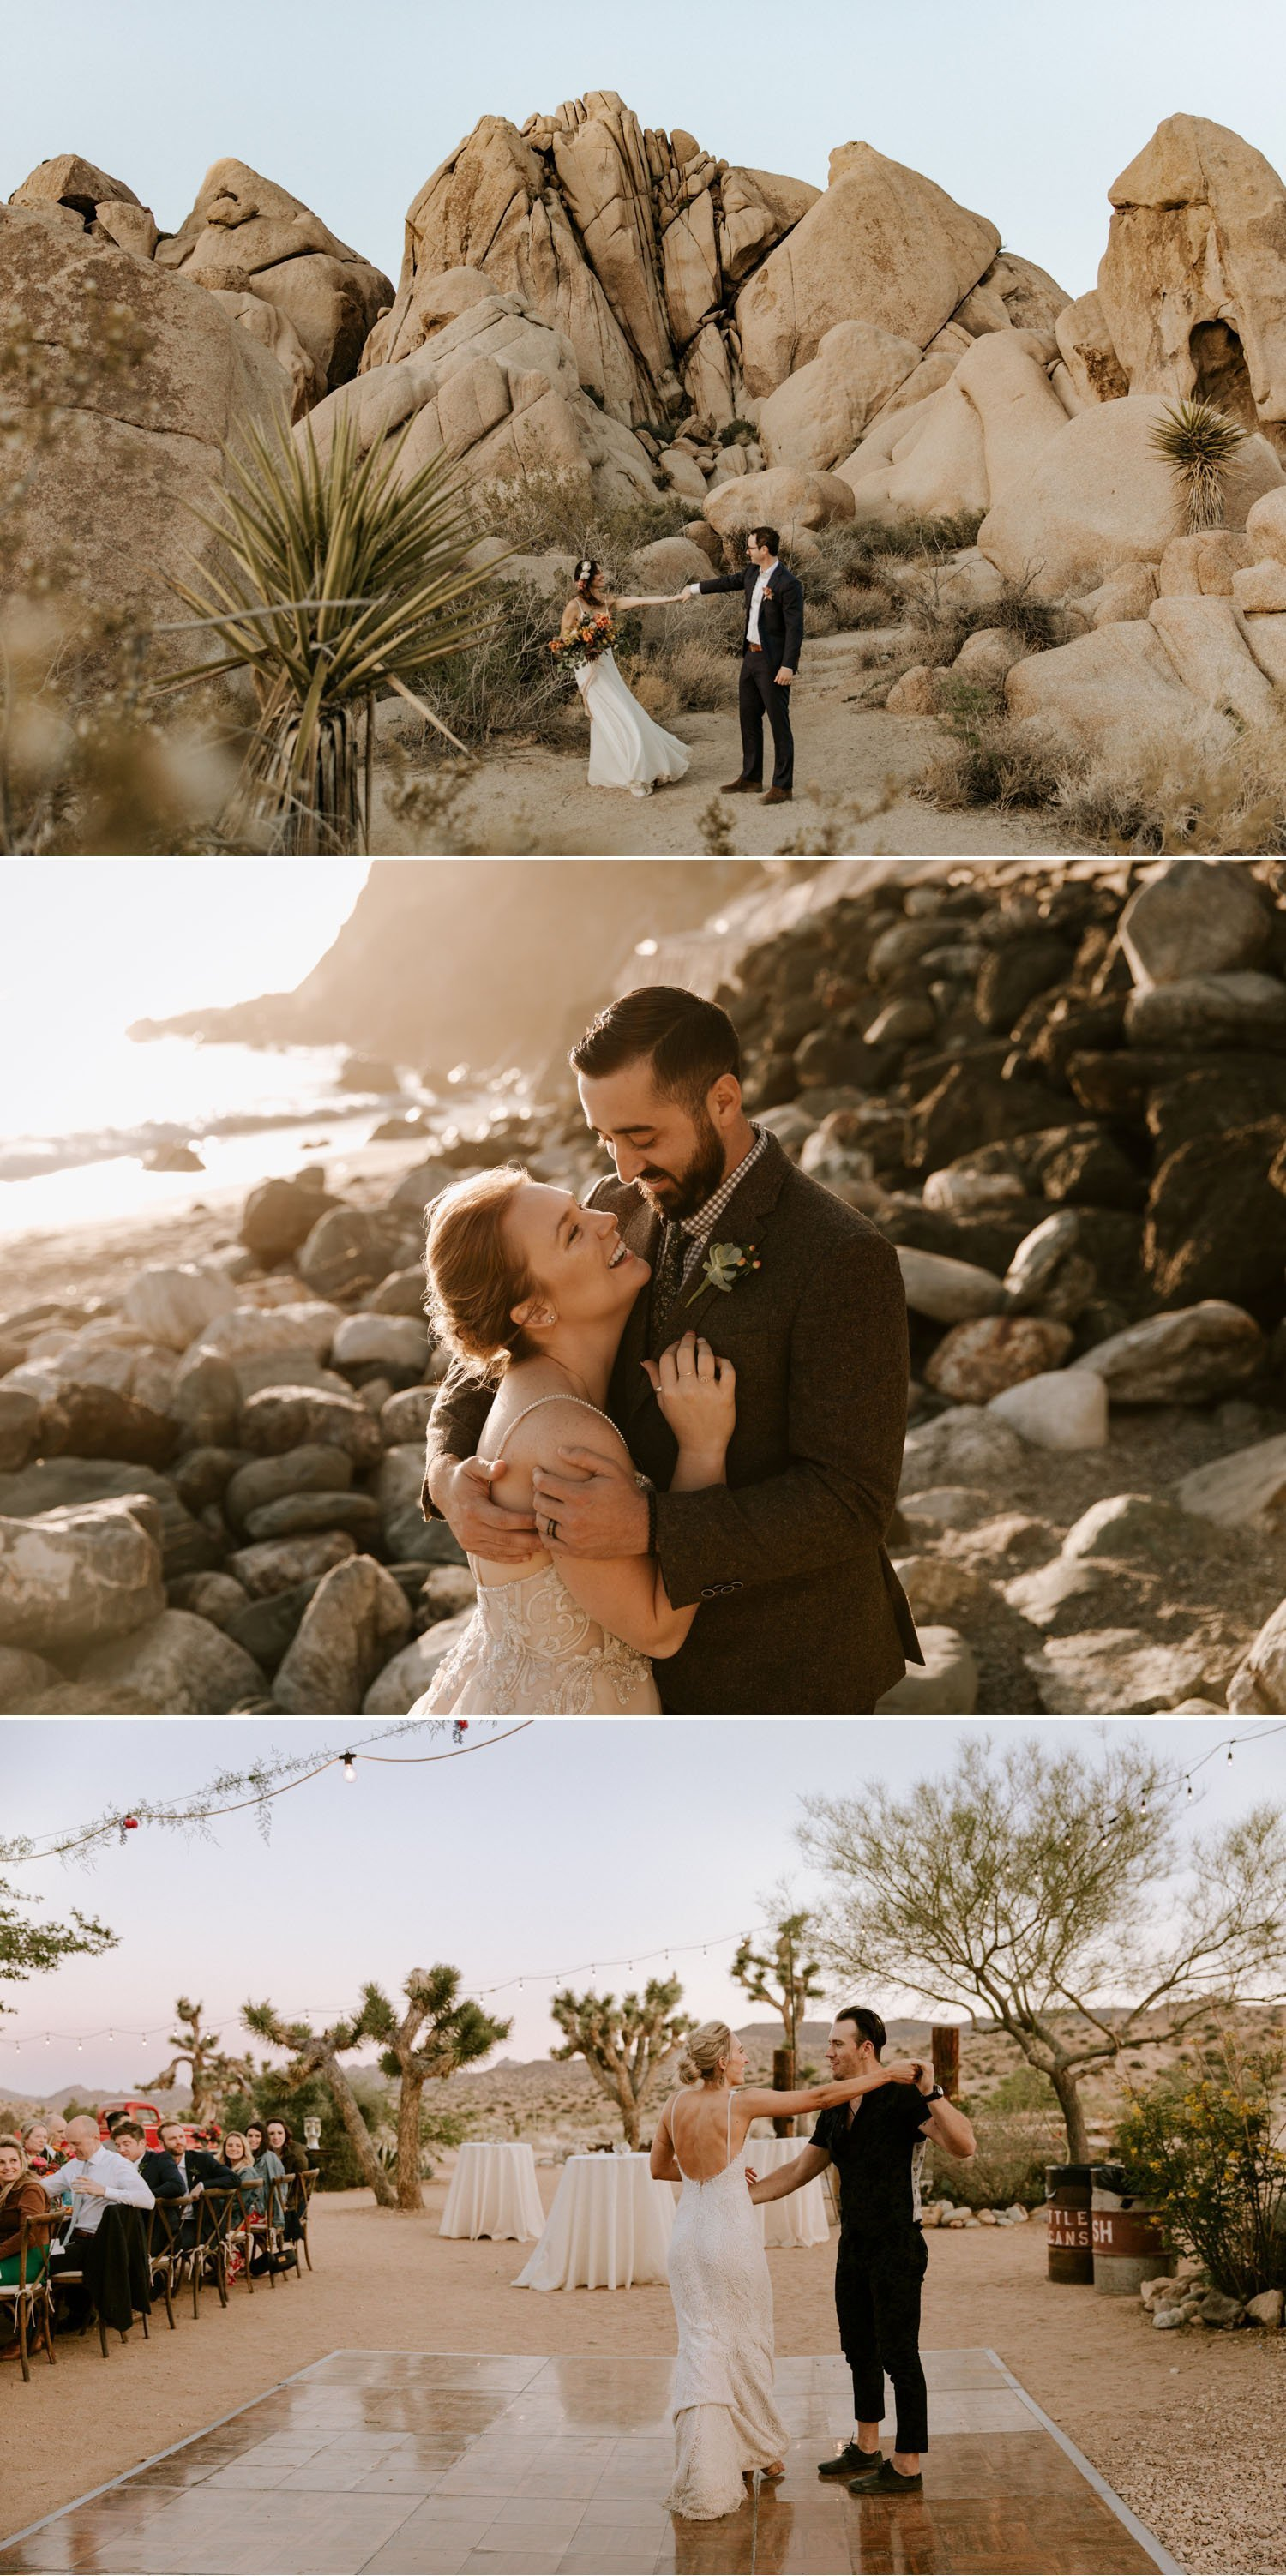 San Diego Wedding Photographer Paige Nelson, Destination Intimate Wedding and Elopements